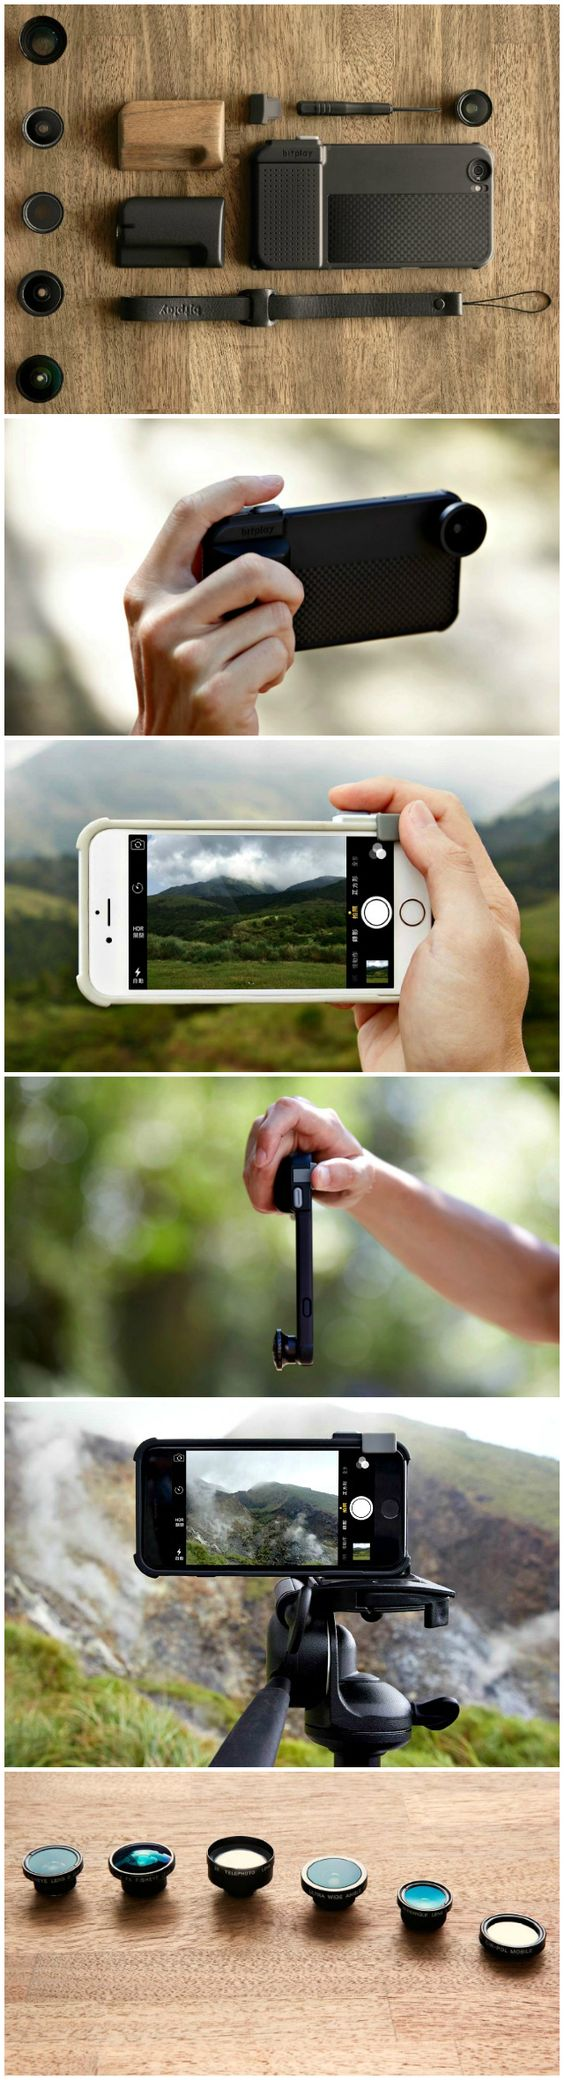 SNAP! Pro is an iPhone 6 and 6S case that turns your iPhone into a professional level camera with a real shutter button, interchangeable lenses and ergonomic grip.